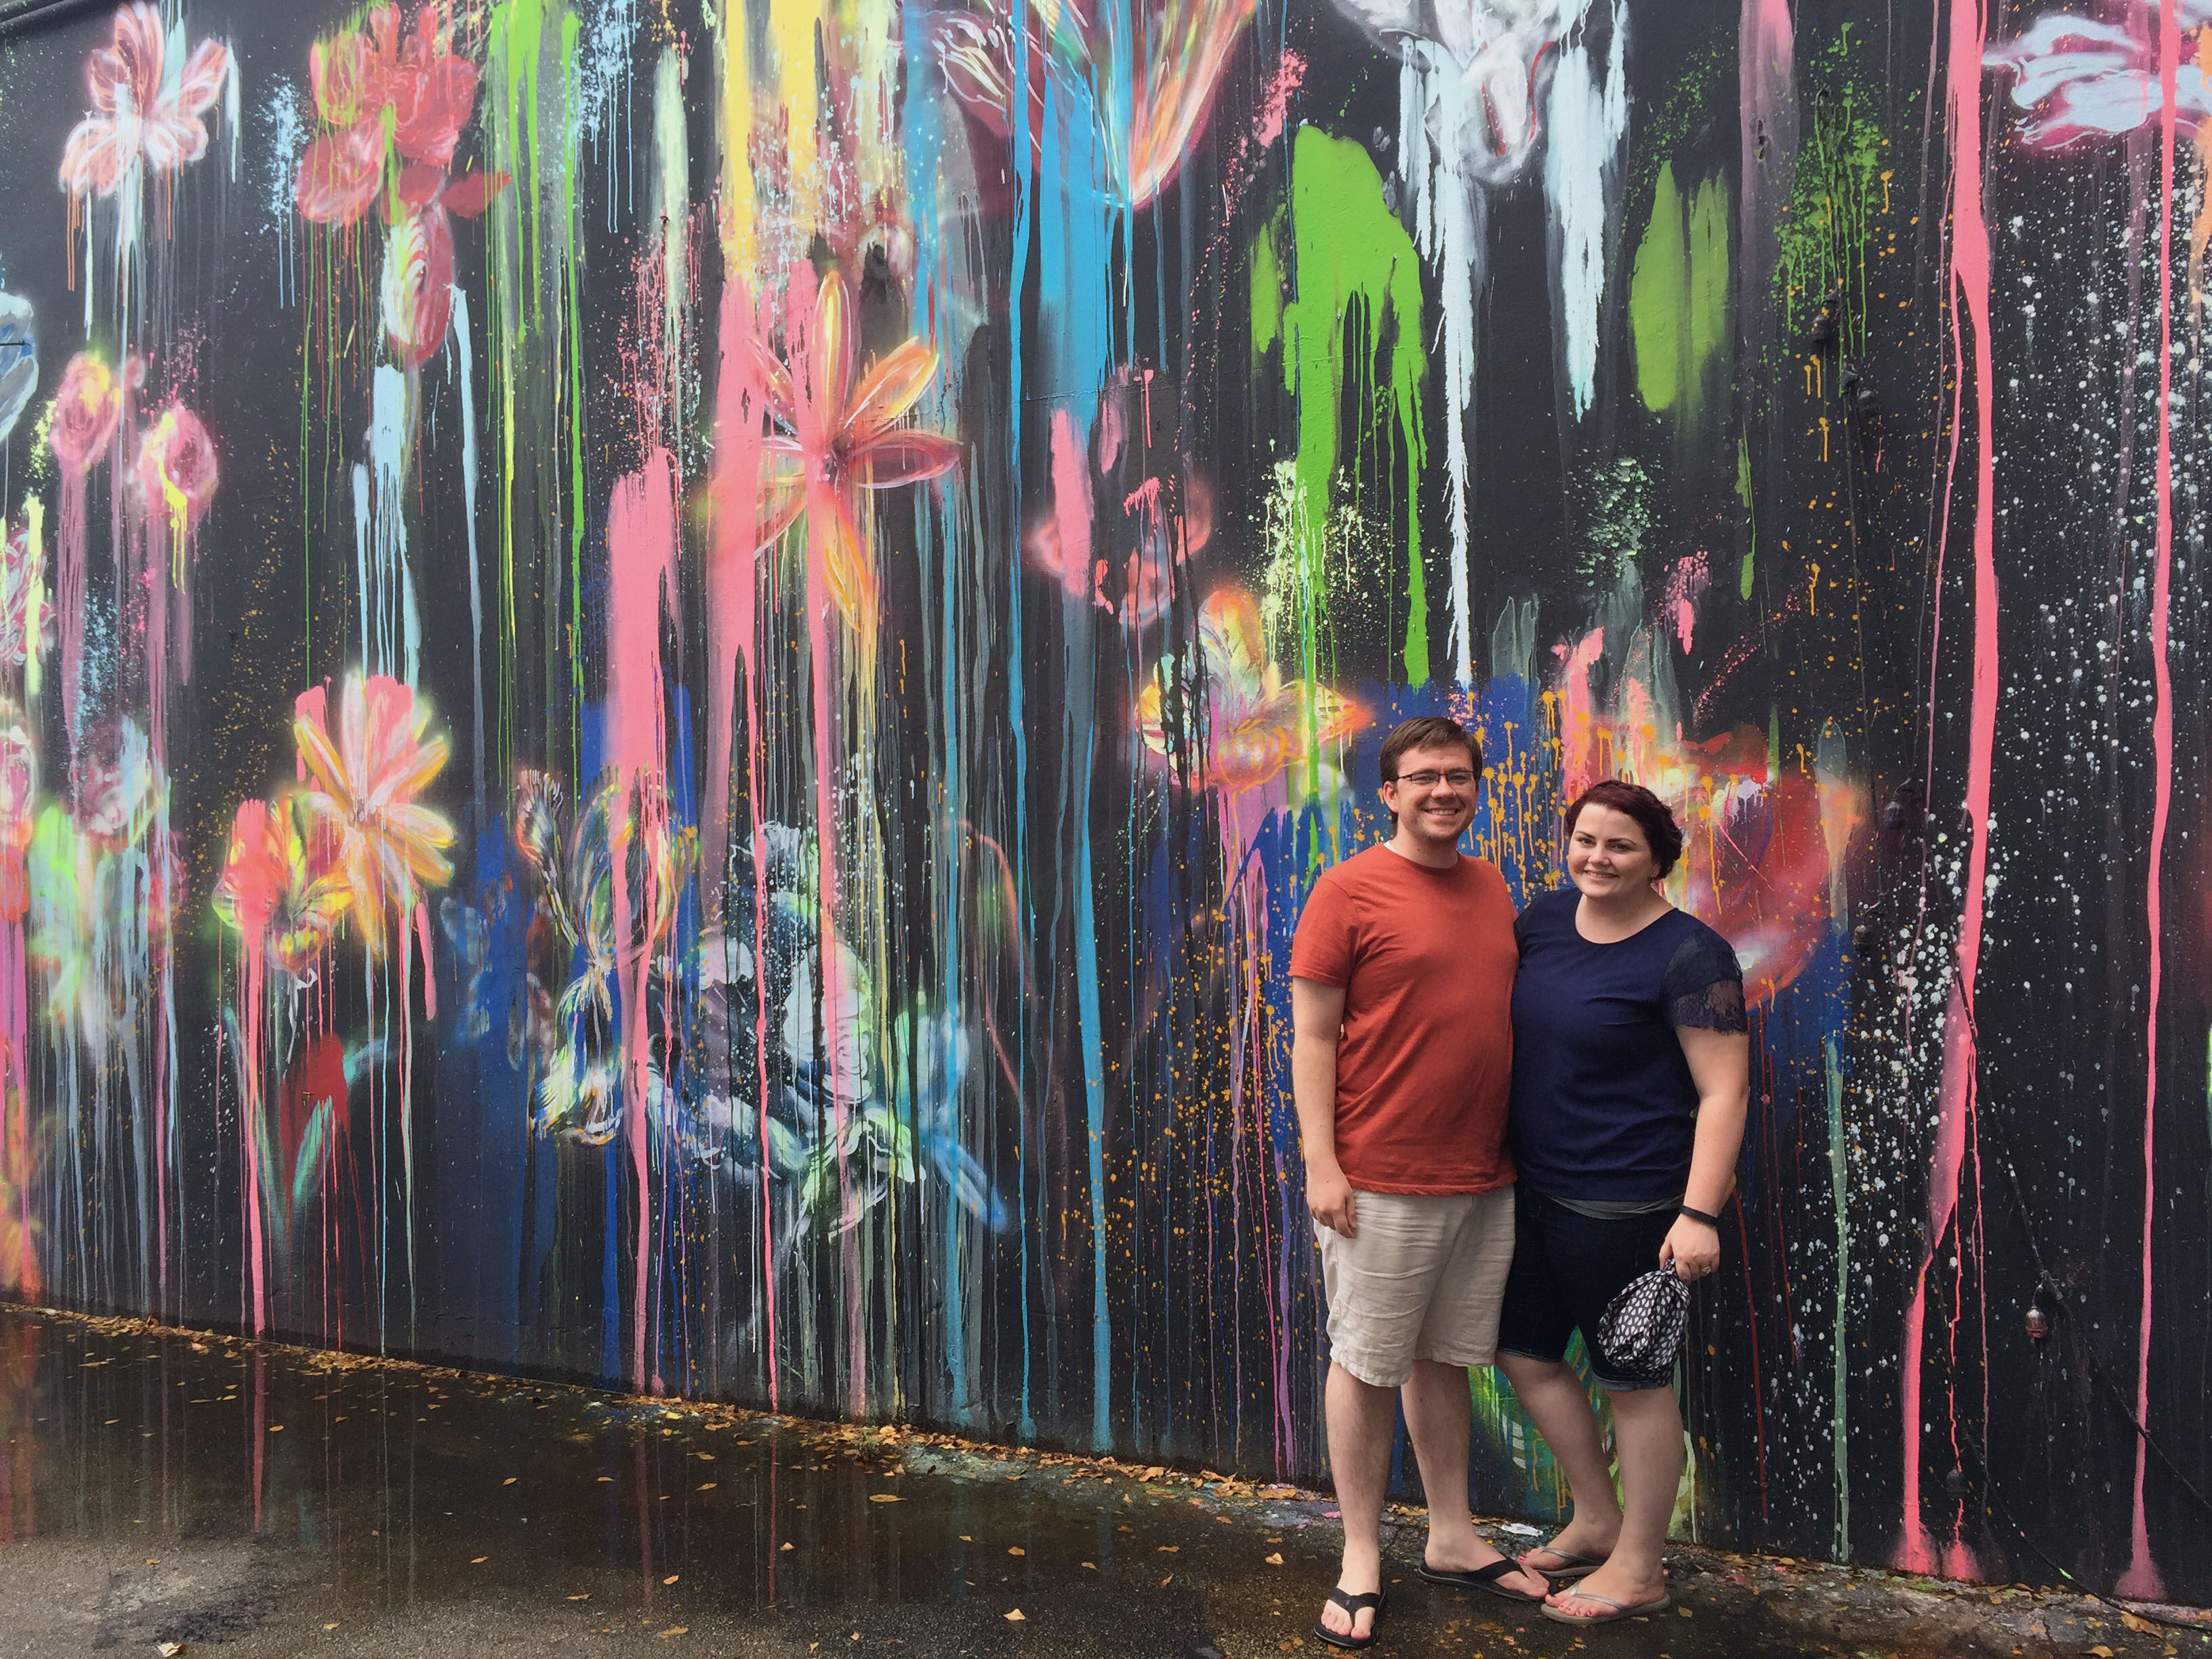 meeting my Finnish penpal: a fun trip to Florida describing my experience meeting my childhood penpal. Photos taken in Calle Ocho in Miami, Florida. | Stay gold Autumn